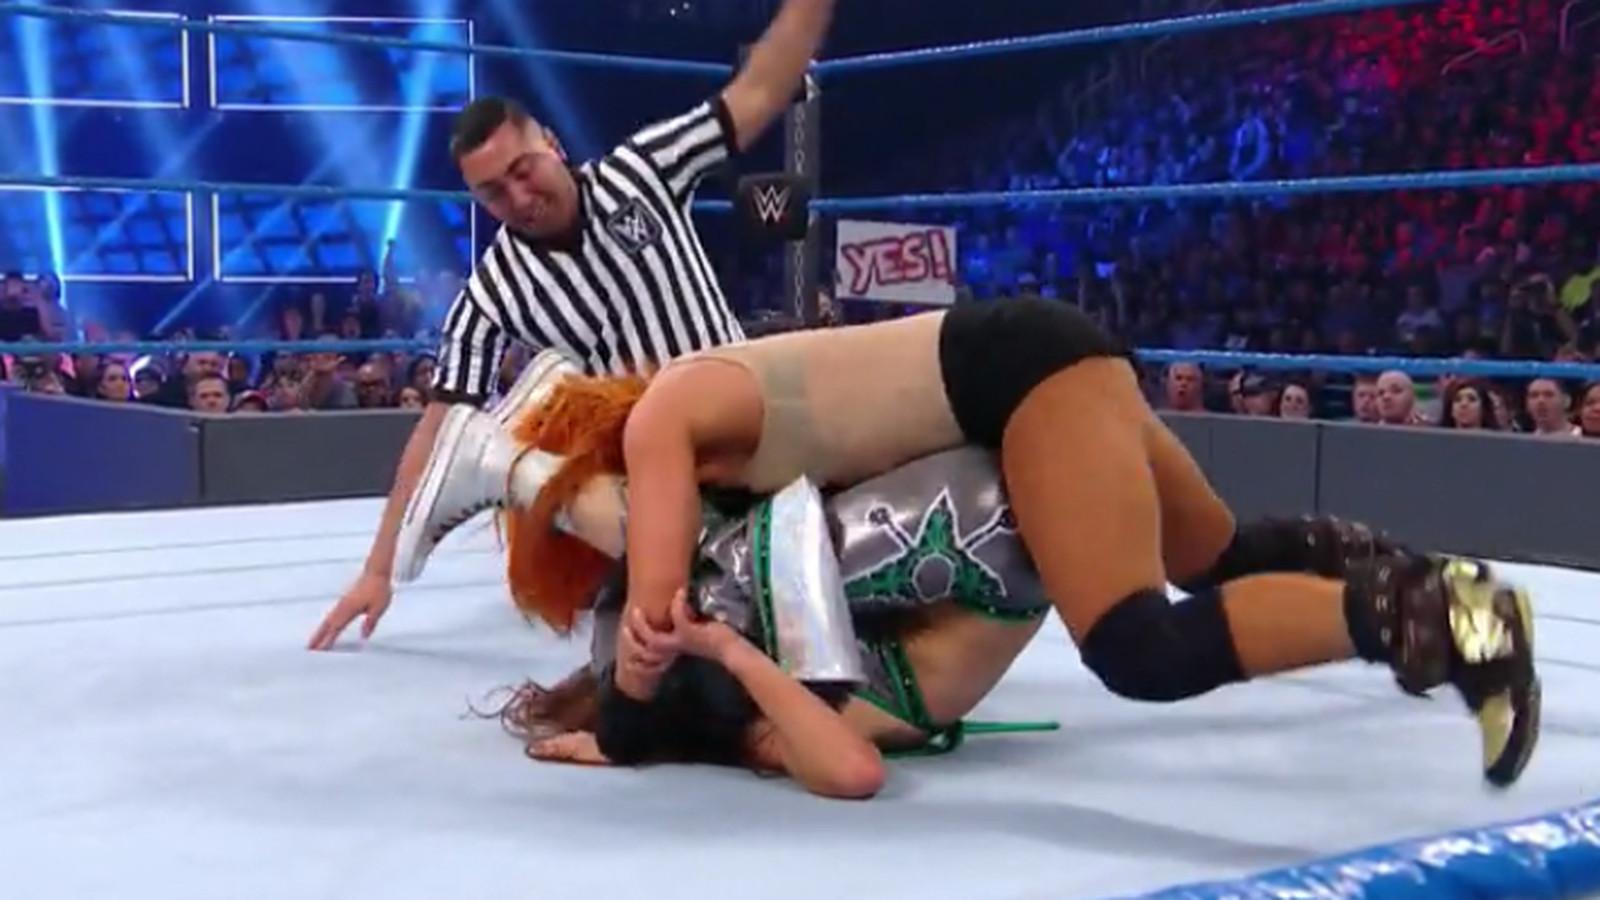 WWE Elimination Chamber 2017 results: Becky Lynch pins Mickie James